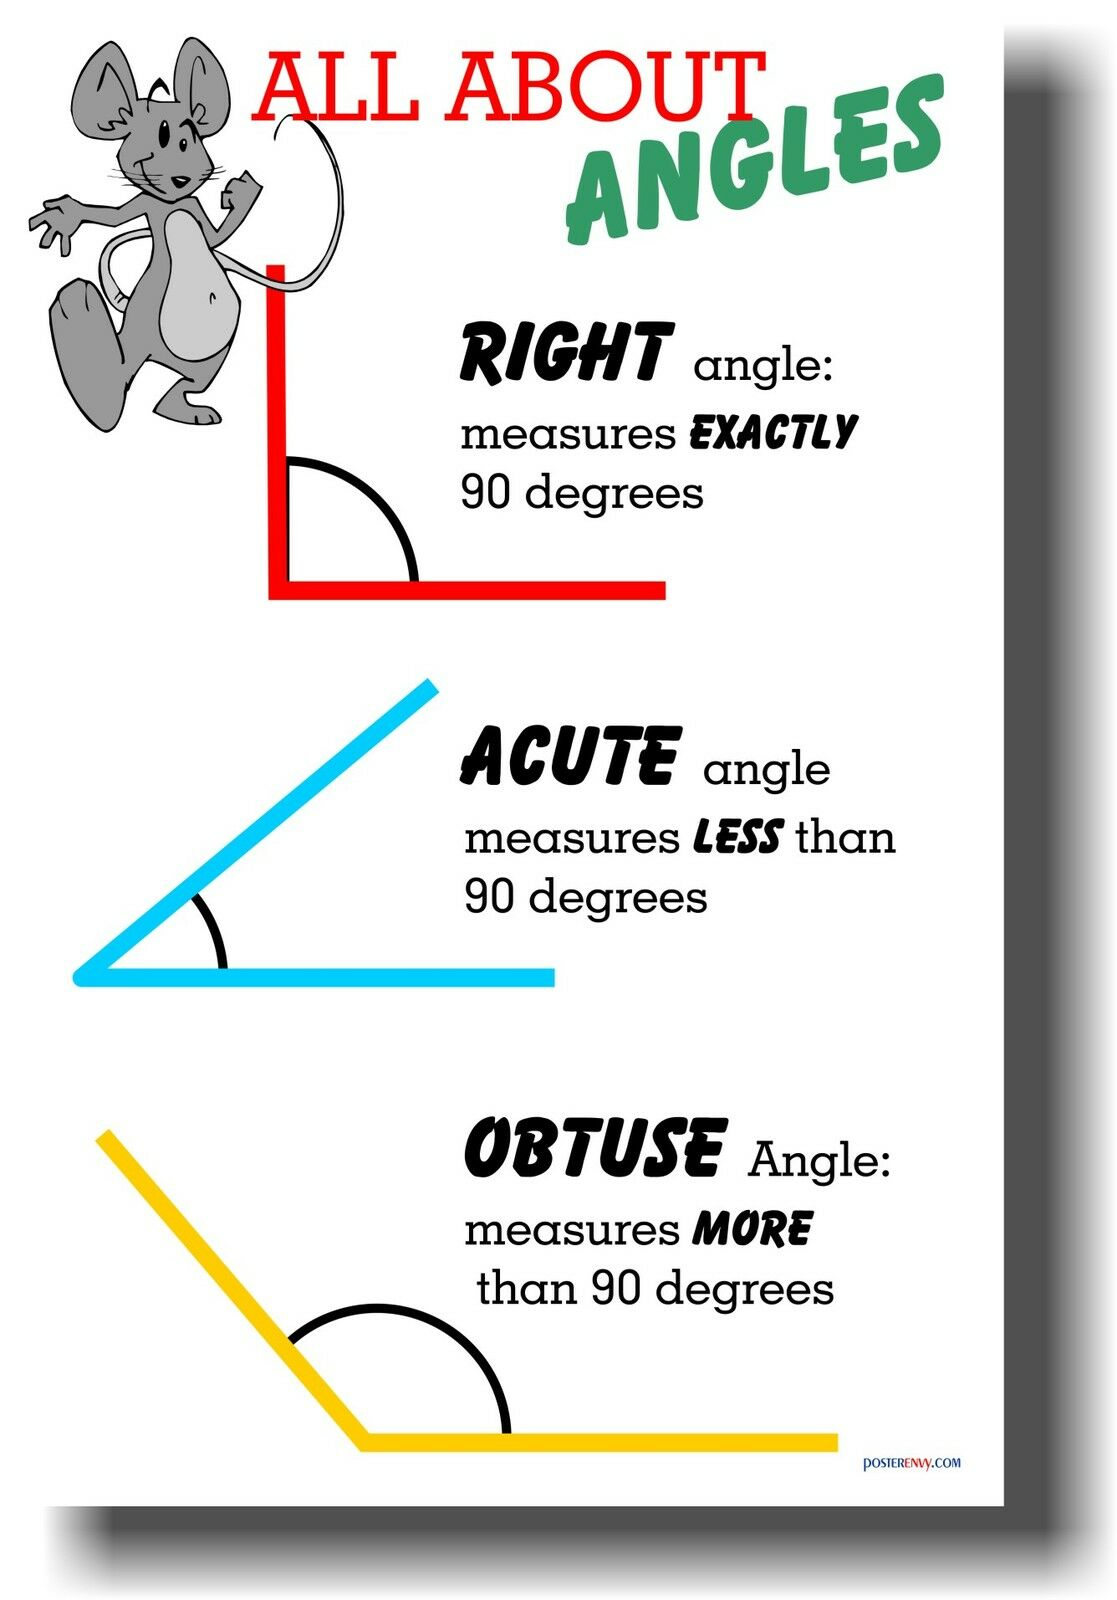 All About Angles